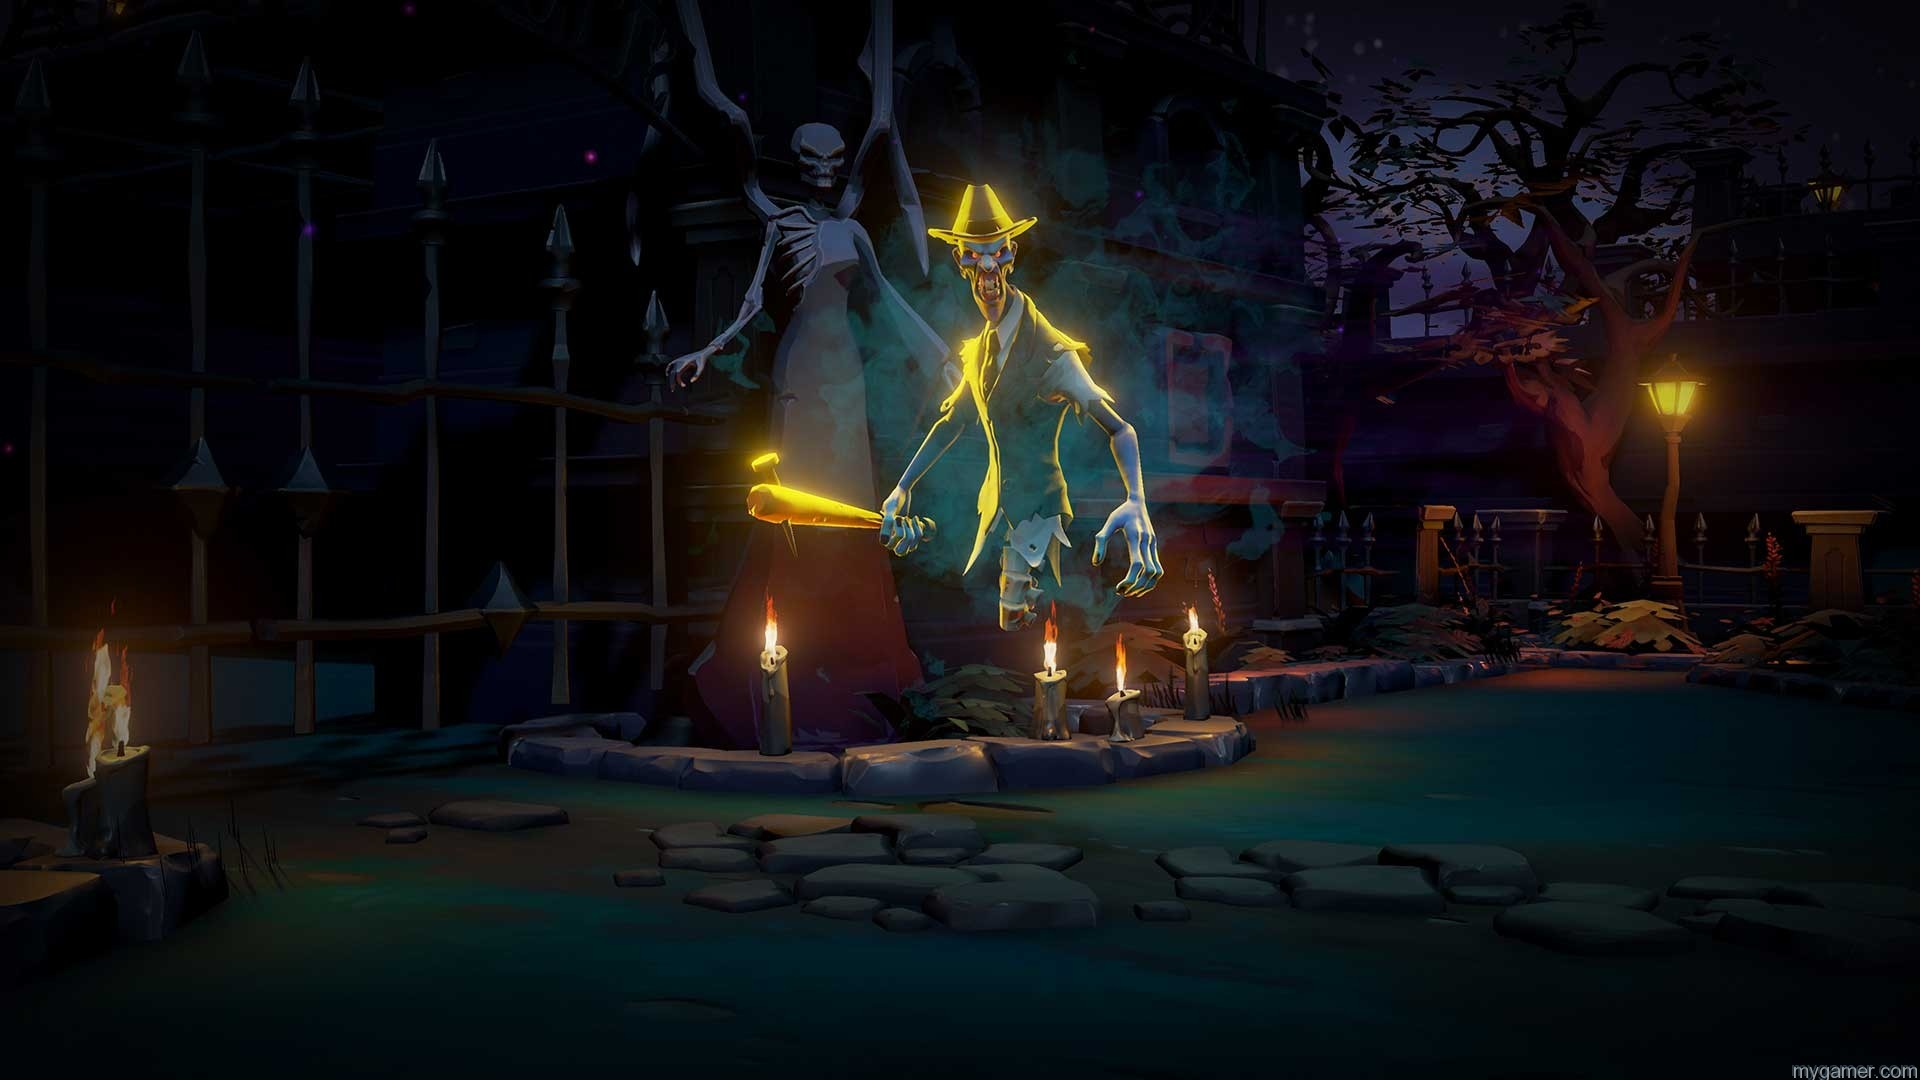 Ghostbusters_Game_4 Activision Releasing Two Ghostbuster Games This Summer - One Console and One Mobile Activision Releasing Two Ghostbuster Games This Summer – One Console and One Mobile Ghostbusters Game 4